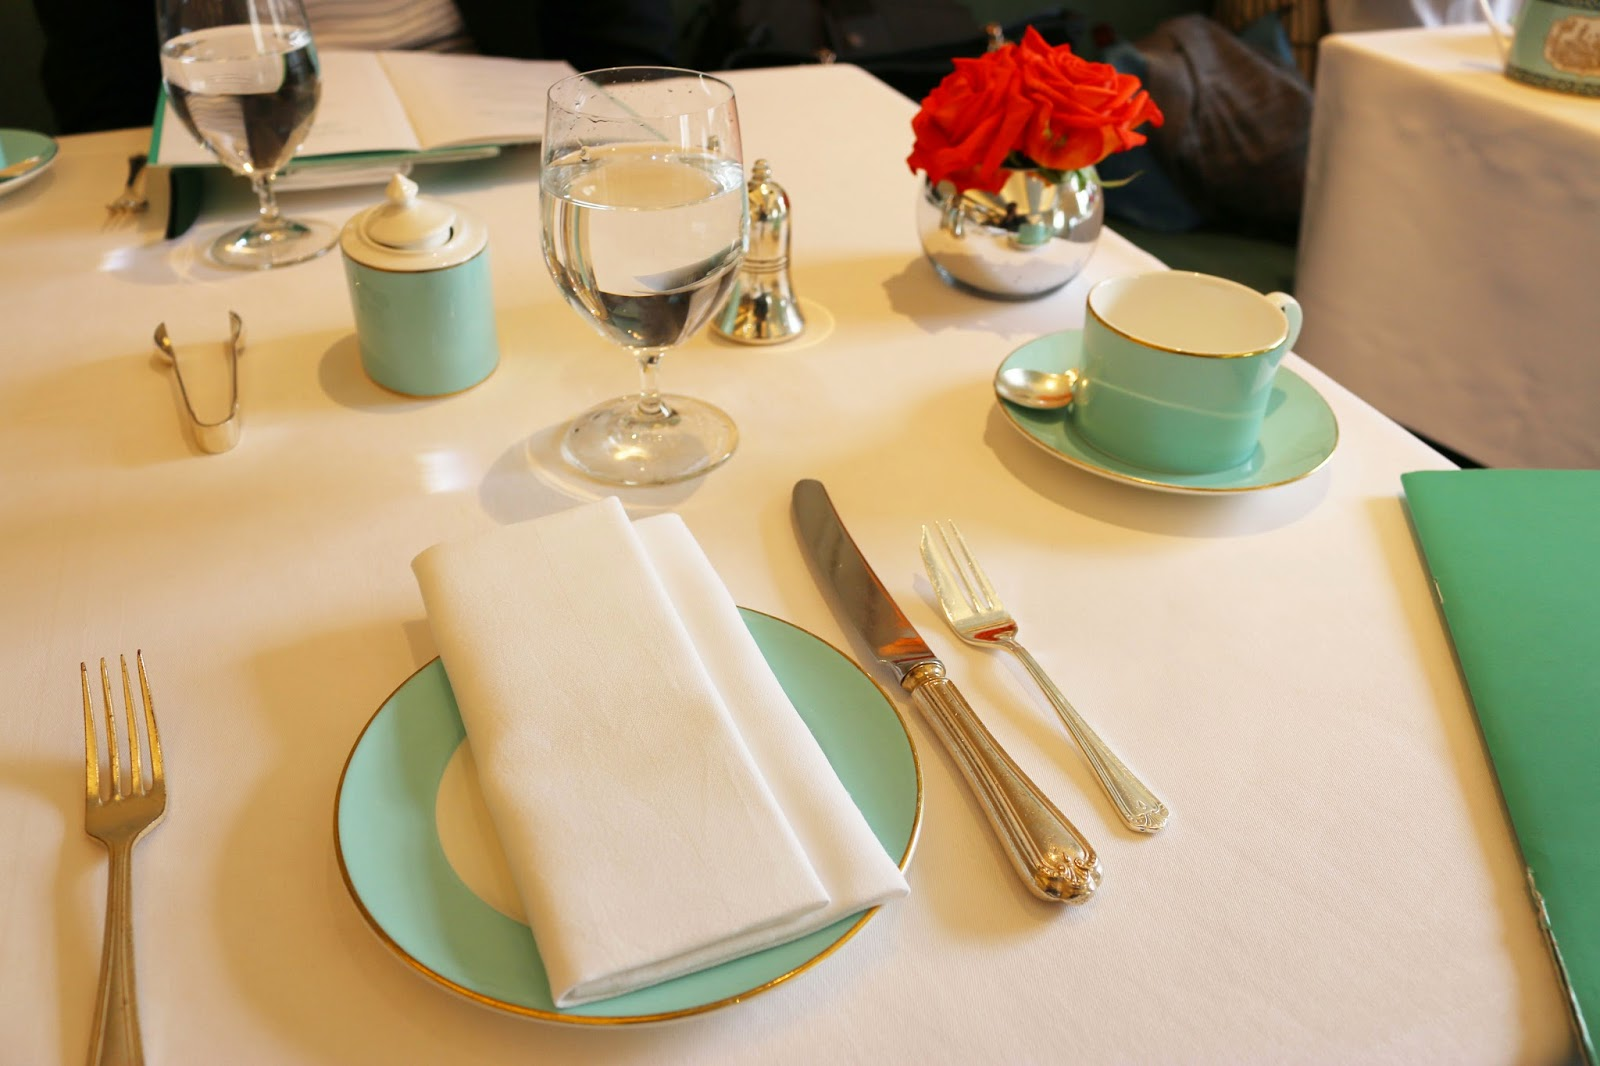 Fortnum & Mason Diamond Jubilee Tea Salon - Afternoon Tea